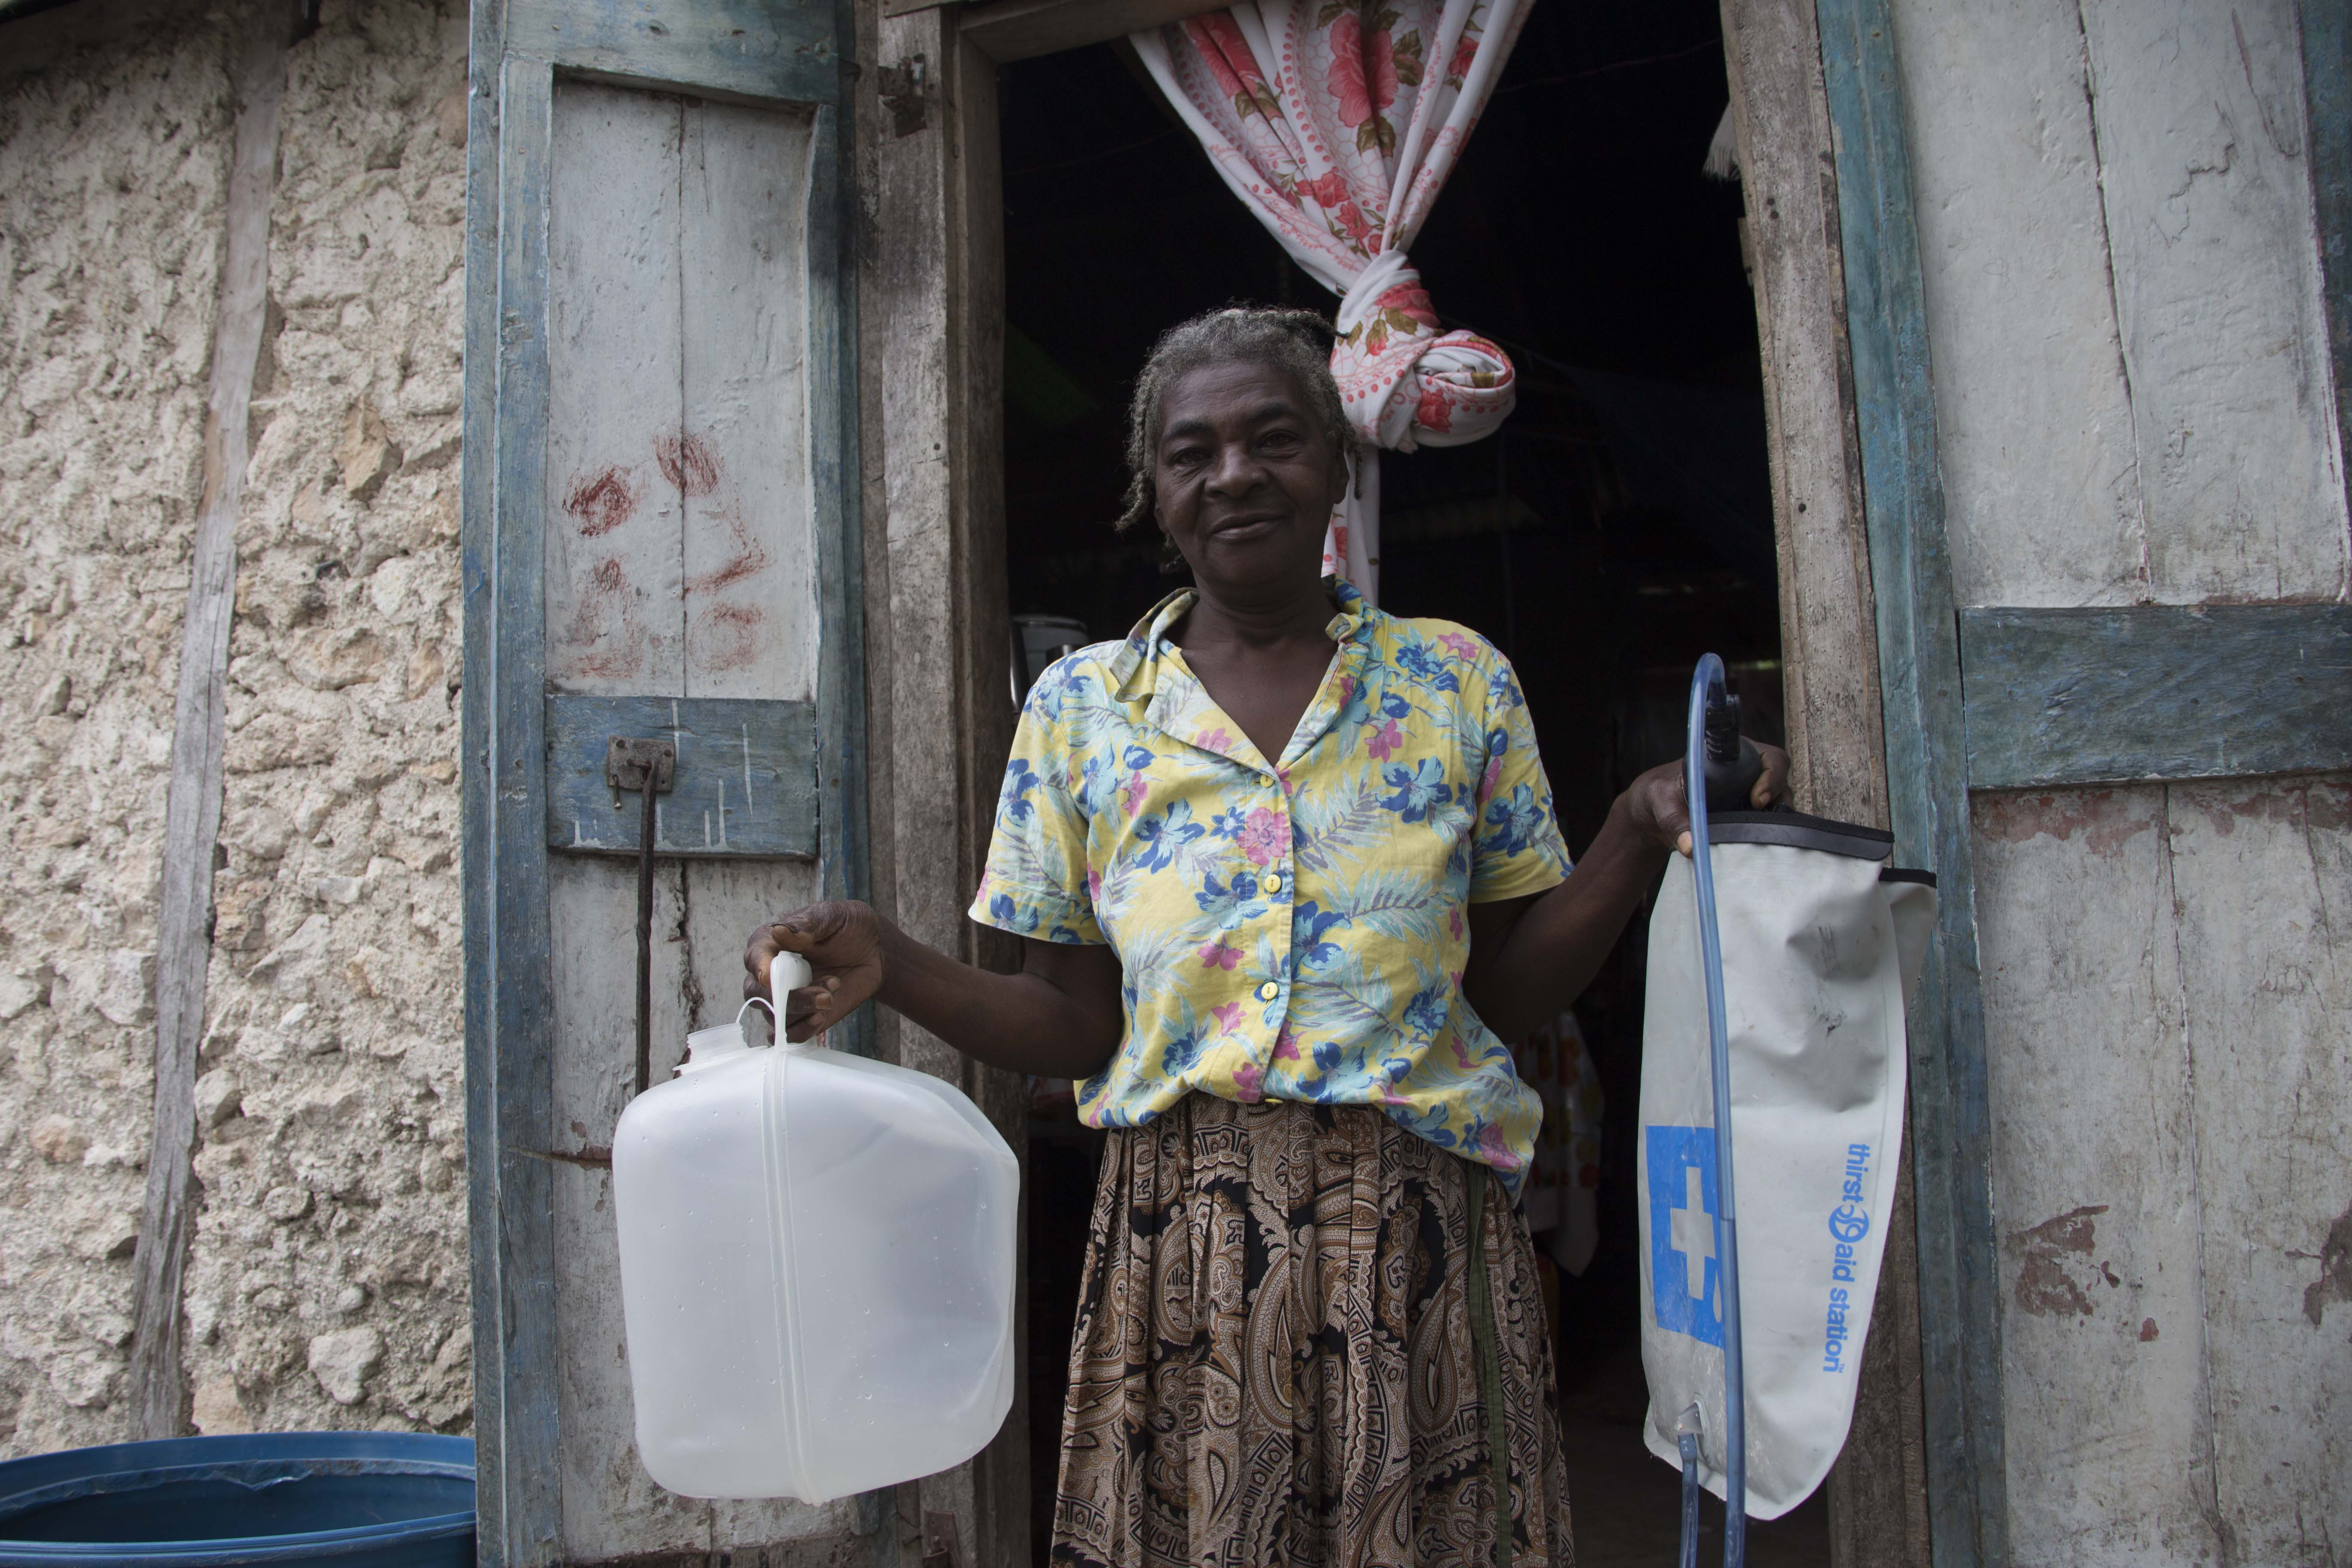 Jeanba with water filter and carrier